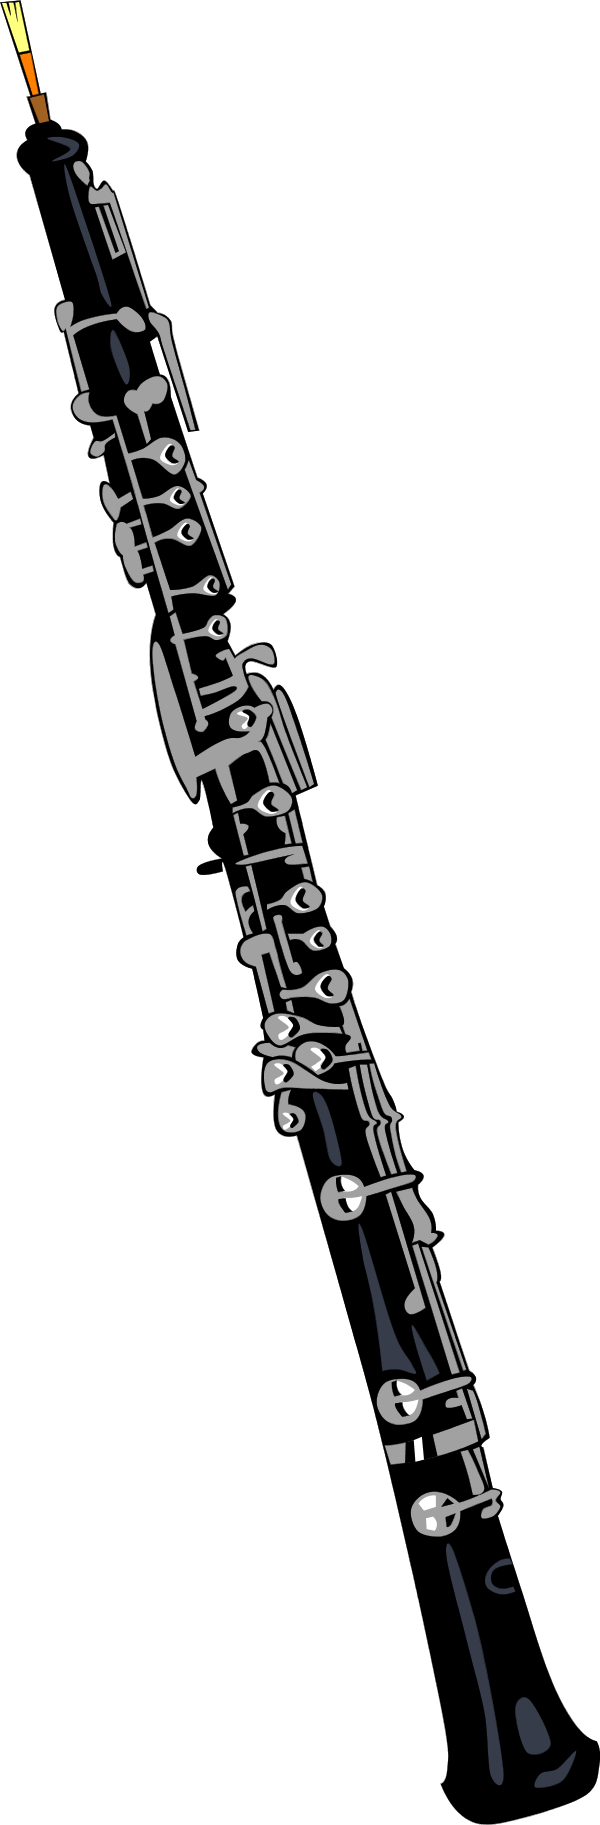 Clarinet Clipart - Cliparts.co